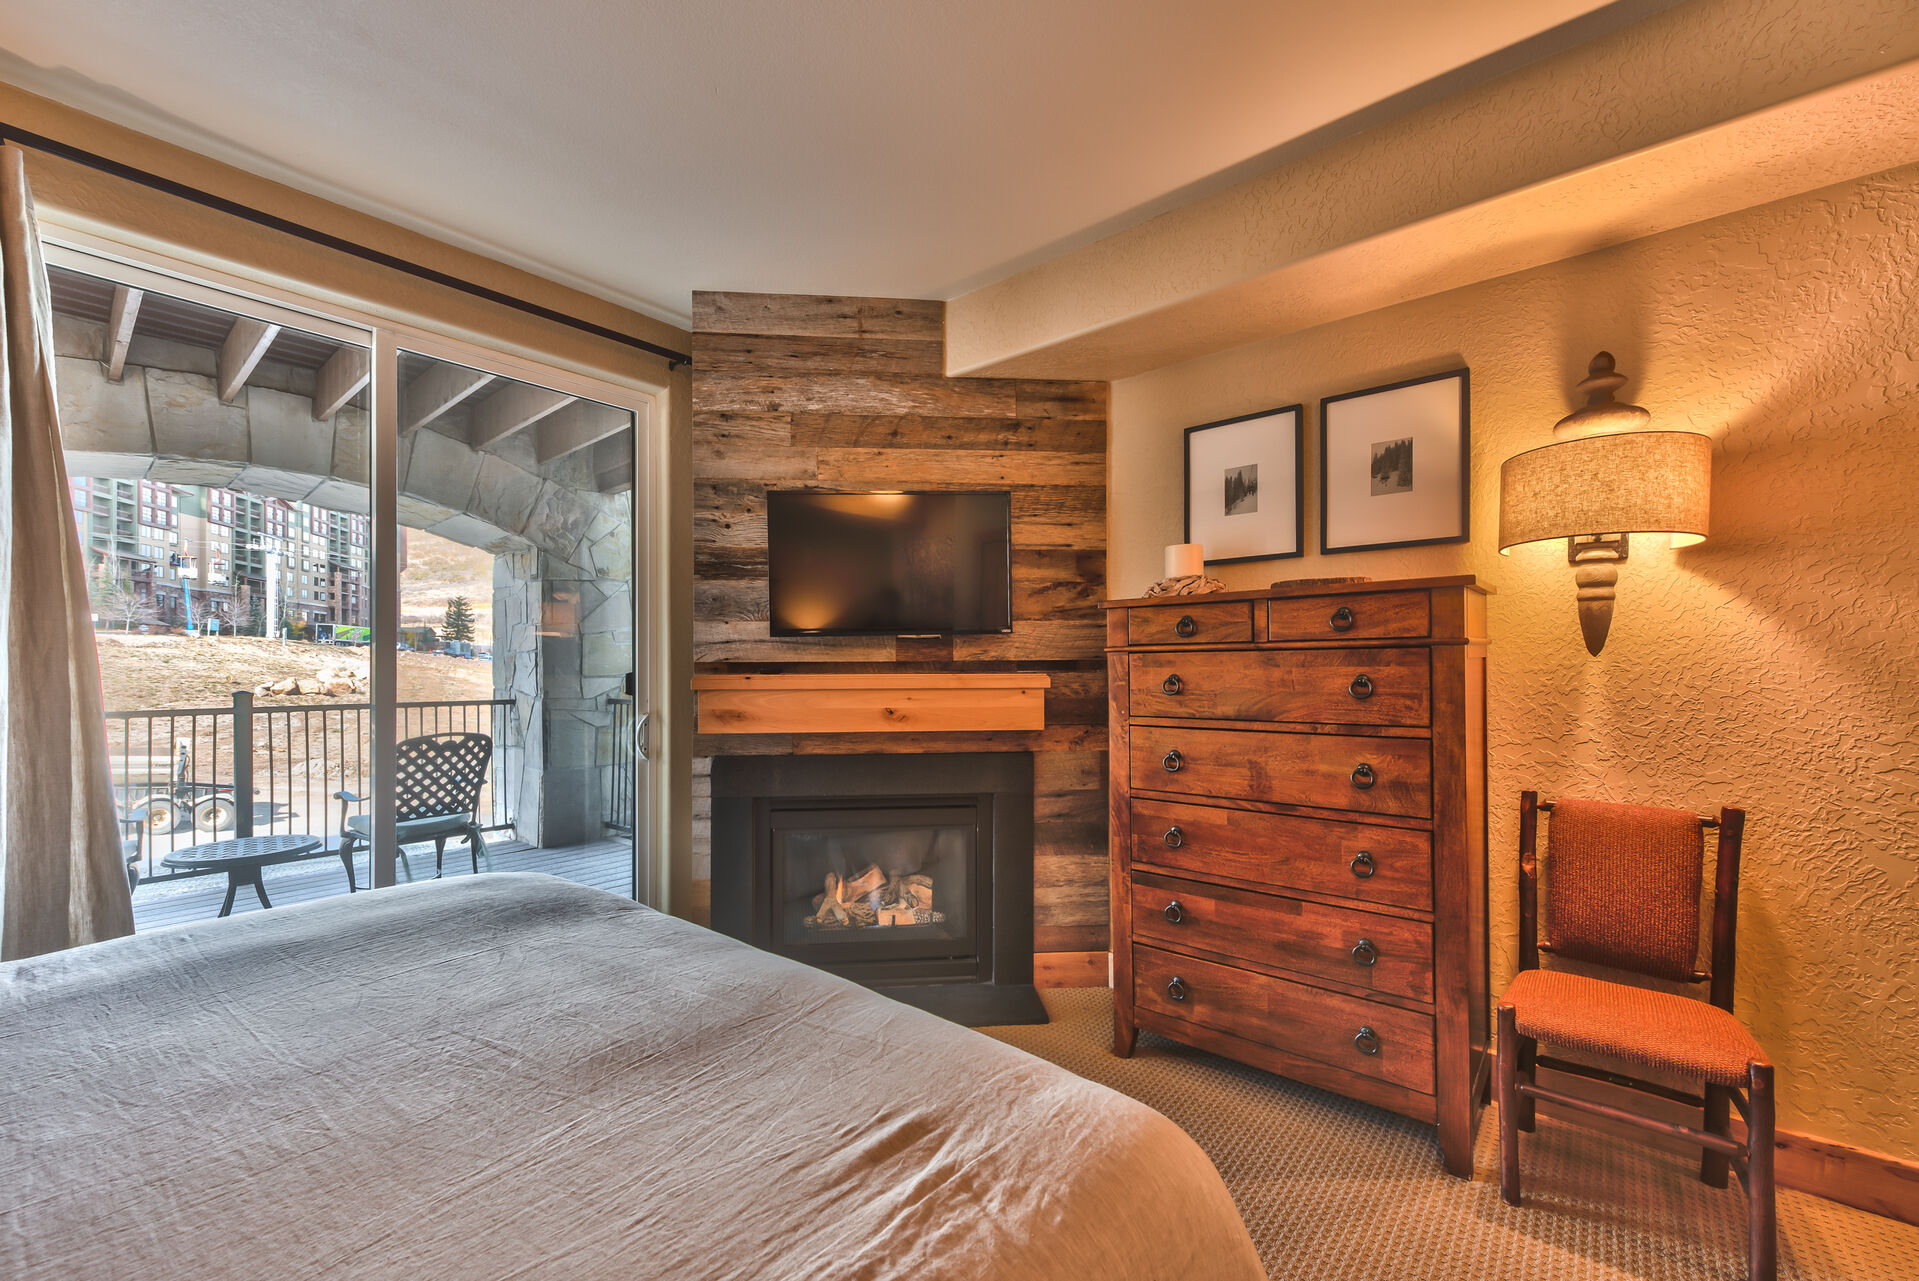 Grand Master bedroom with King Bed, Flat Screen TV, and a Gas Fireplace for a Cozy Ambiance